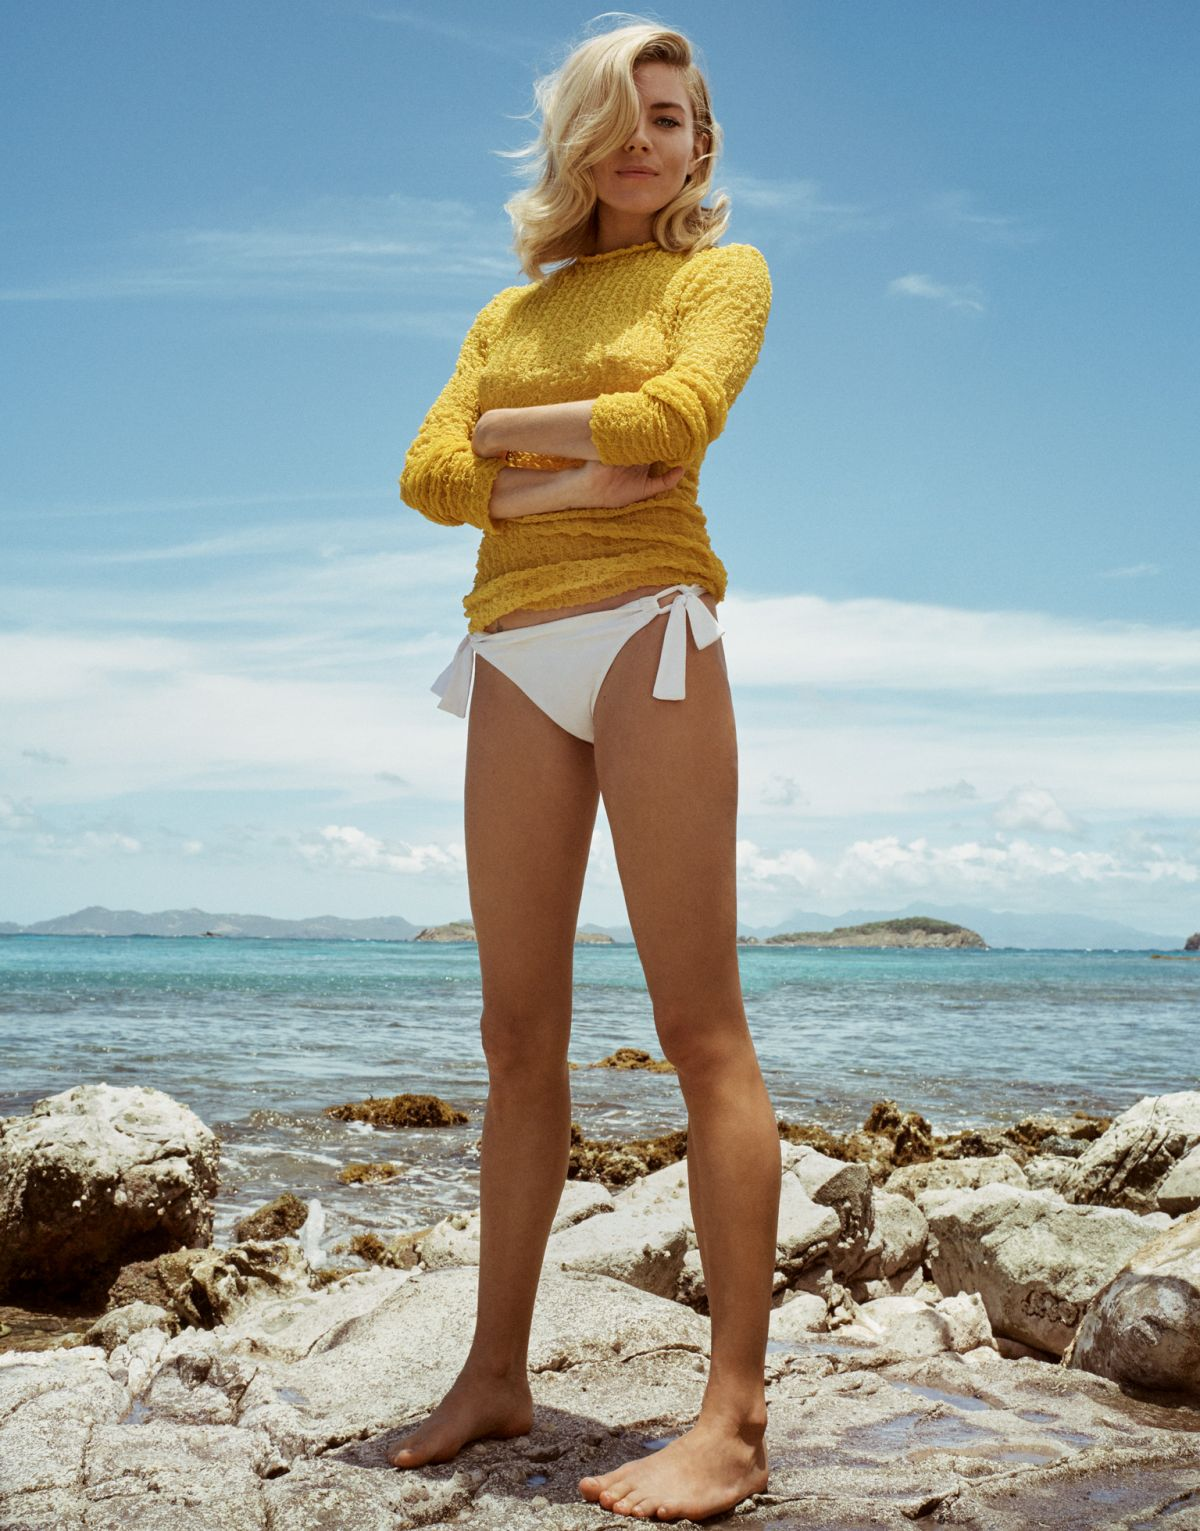 SIENNA MILLER in Porter Magazine, Summer Escape 2016 Issue